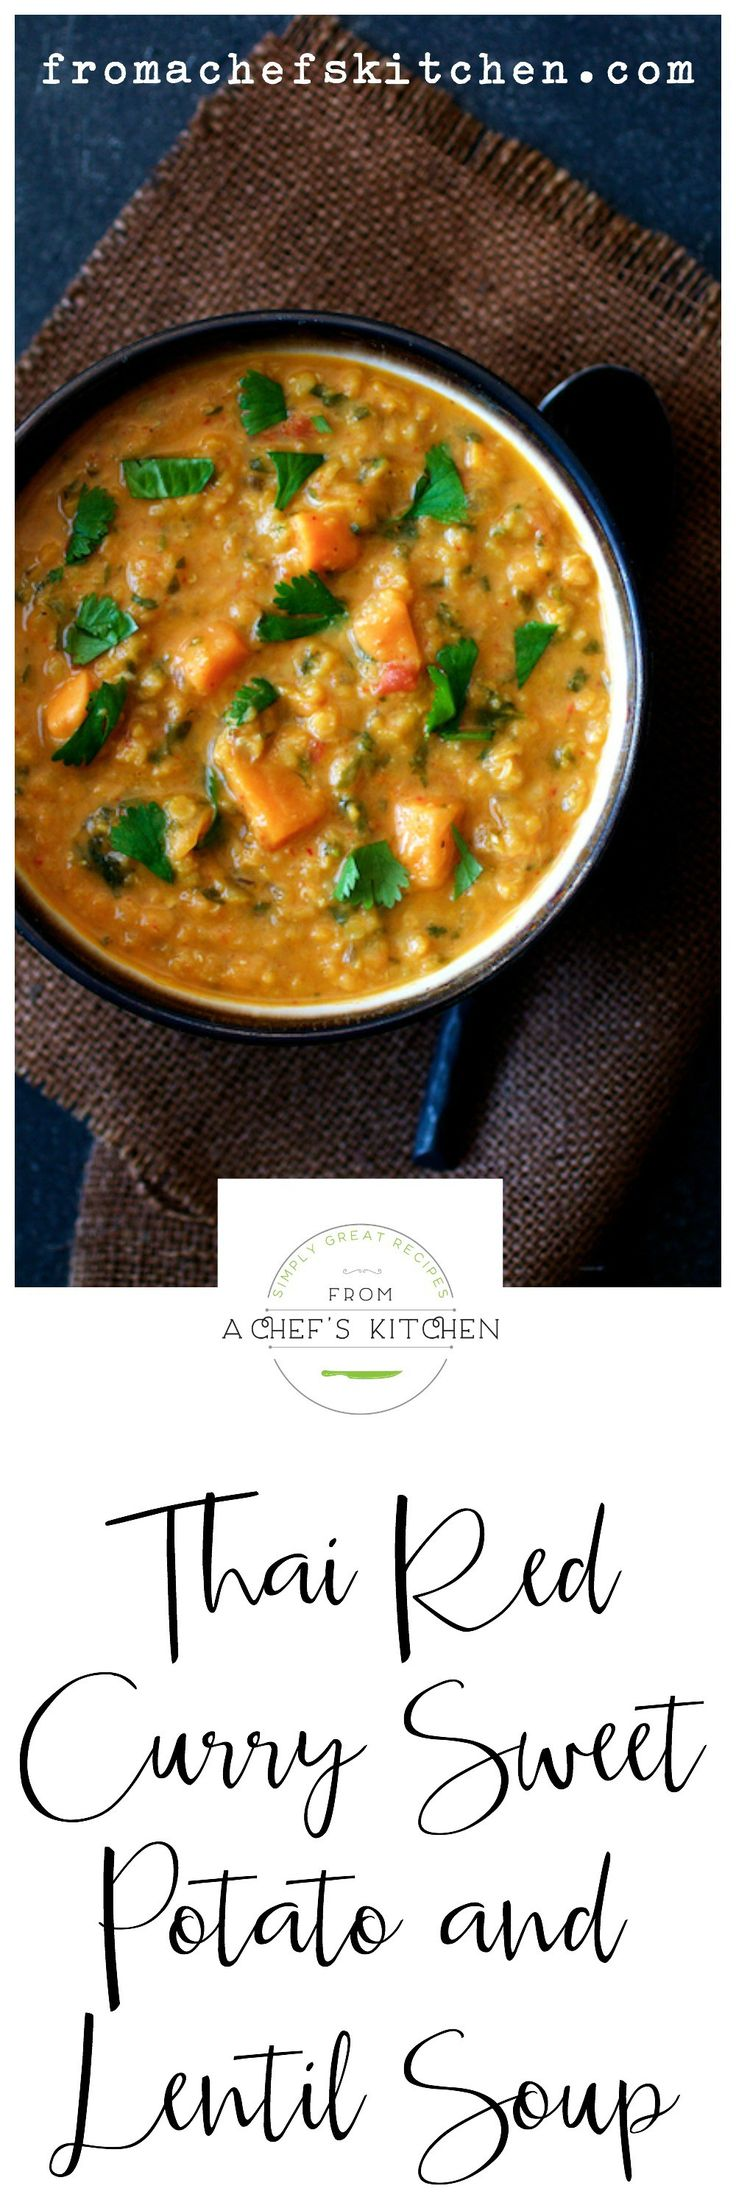 Made it... amazing!!! Thai Red Curry Sweet Potato and Lentil Soup is comfort and warmth in a hurry!